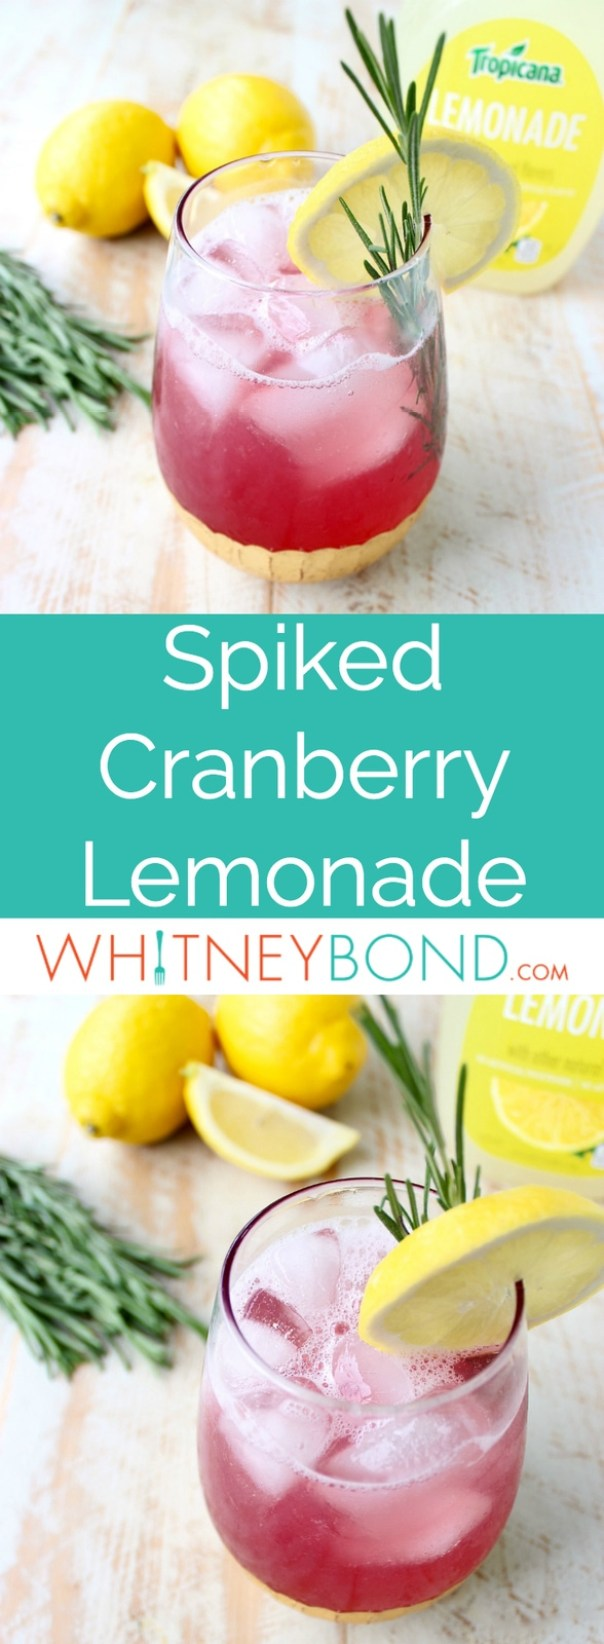 Spiked Cranberry Lemonade is an easy 3 ingredient cocktail that's perfect for sipping on anytime of the year, it's light, refreshing and flavorful!